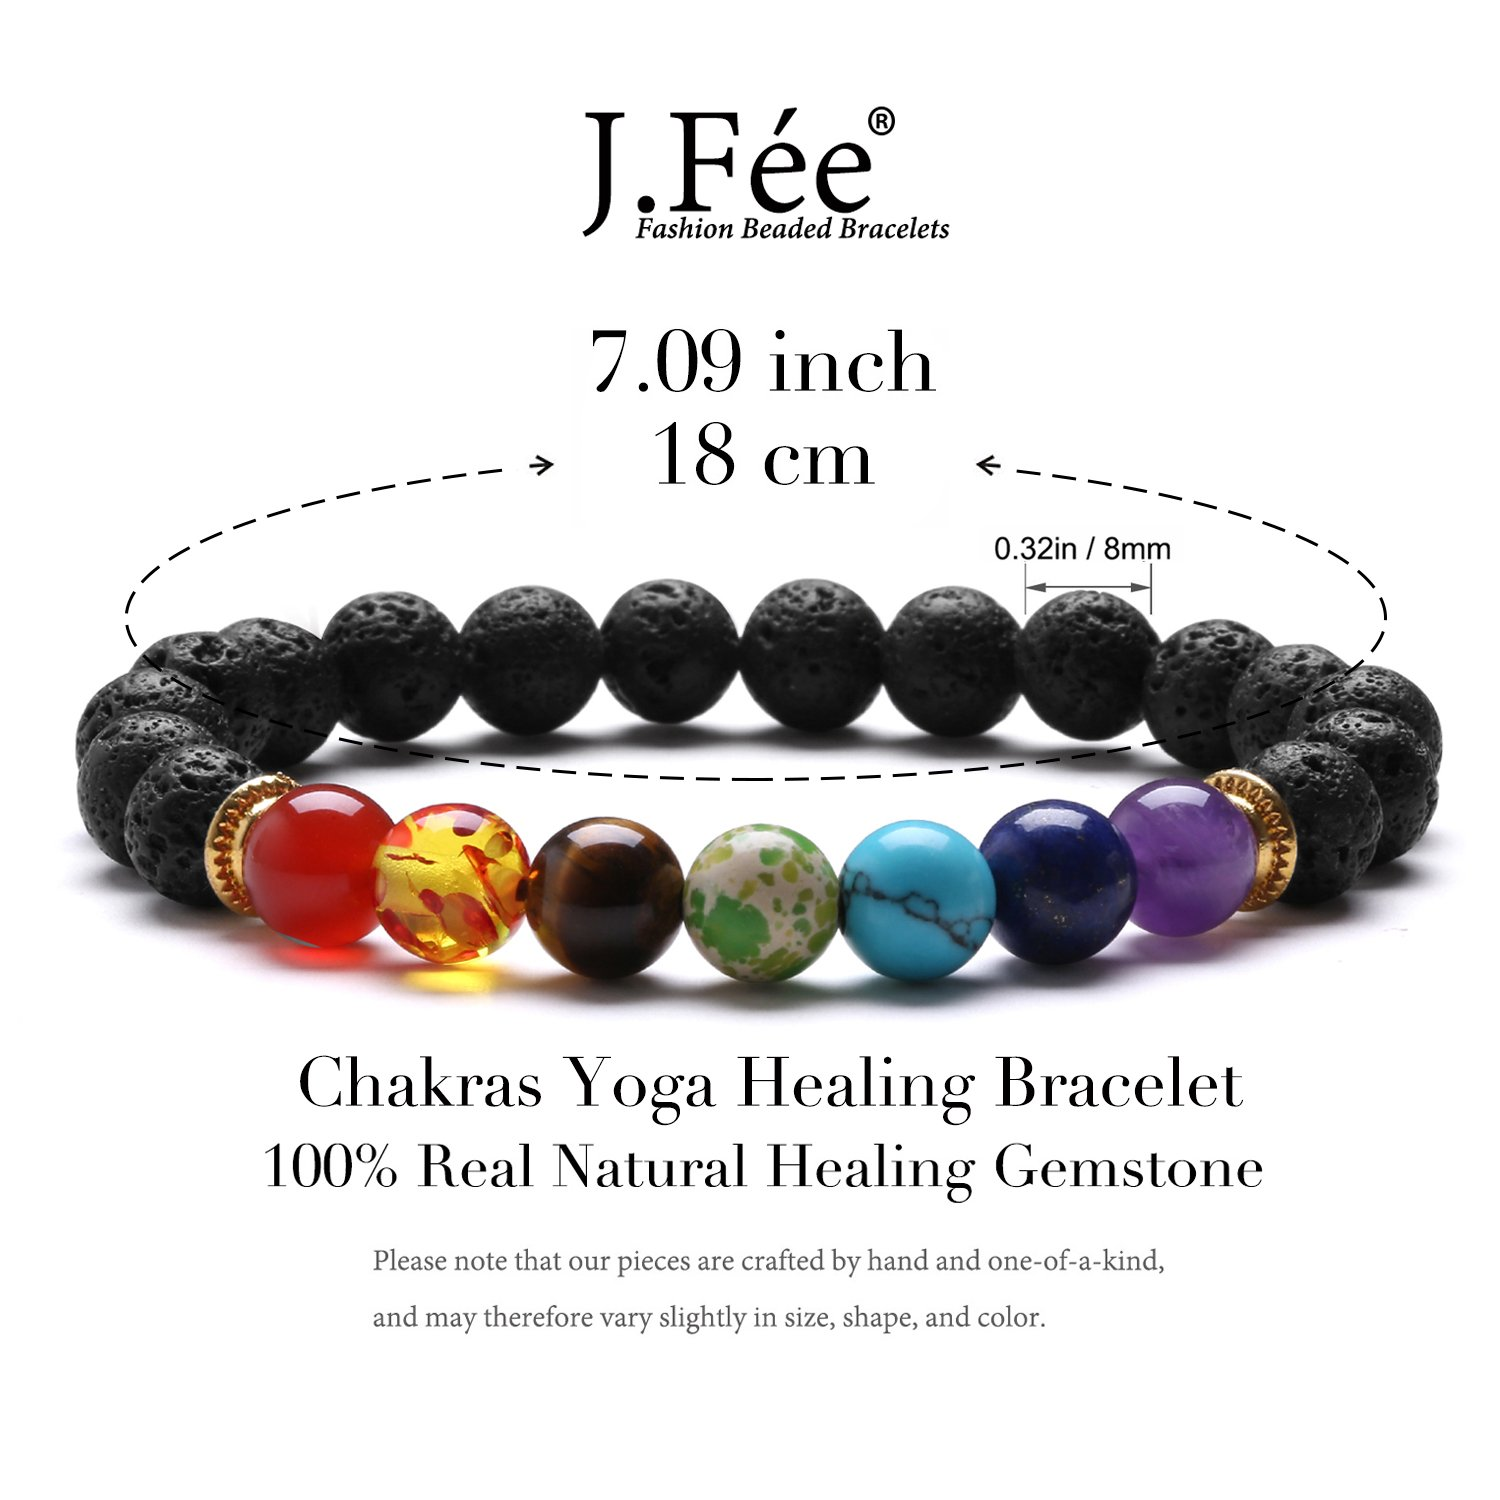 lava trendy china from for dhgate bead product healing jewelry women stone discount rock beads natural gift bracelet string turquoise men com